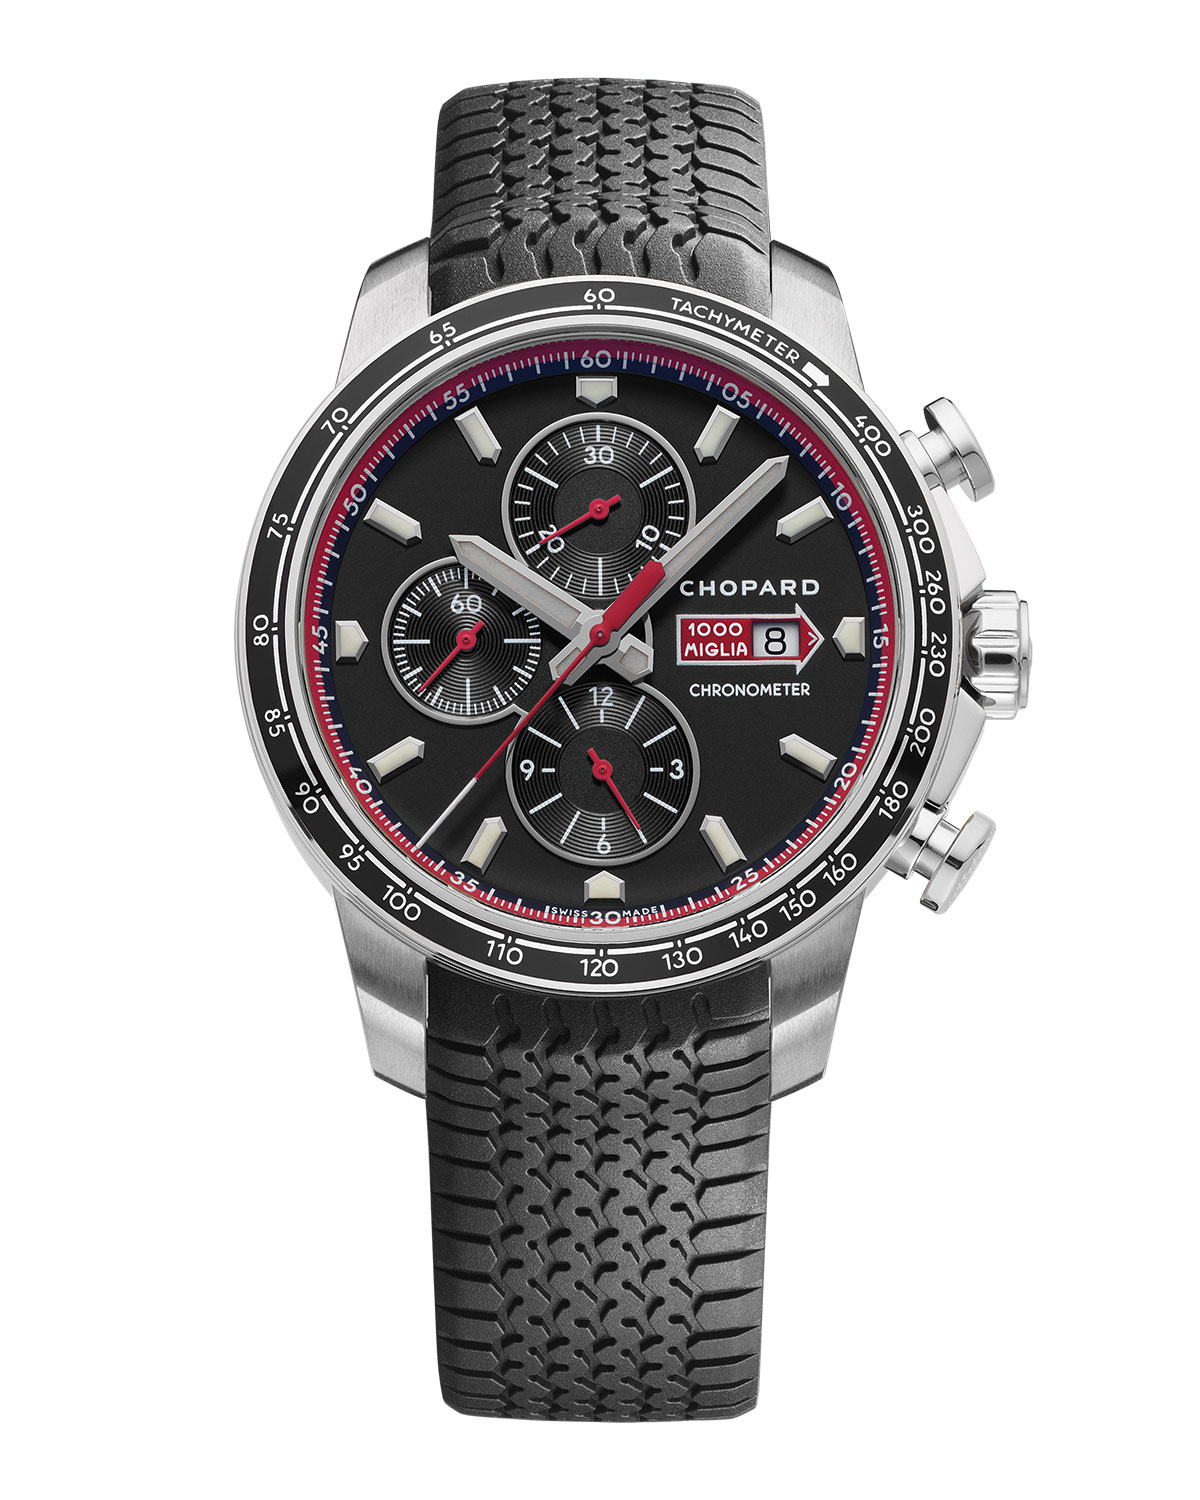 44 mm Mille Miglia GTS Chronograph Watch